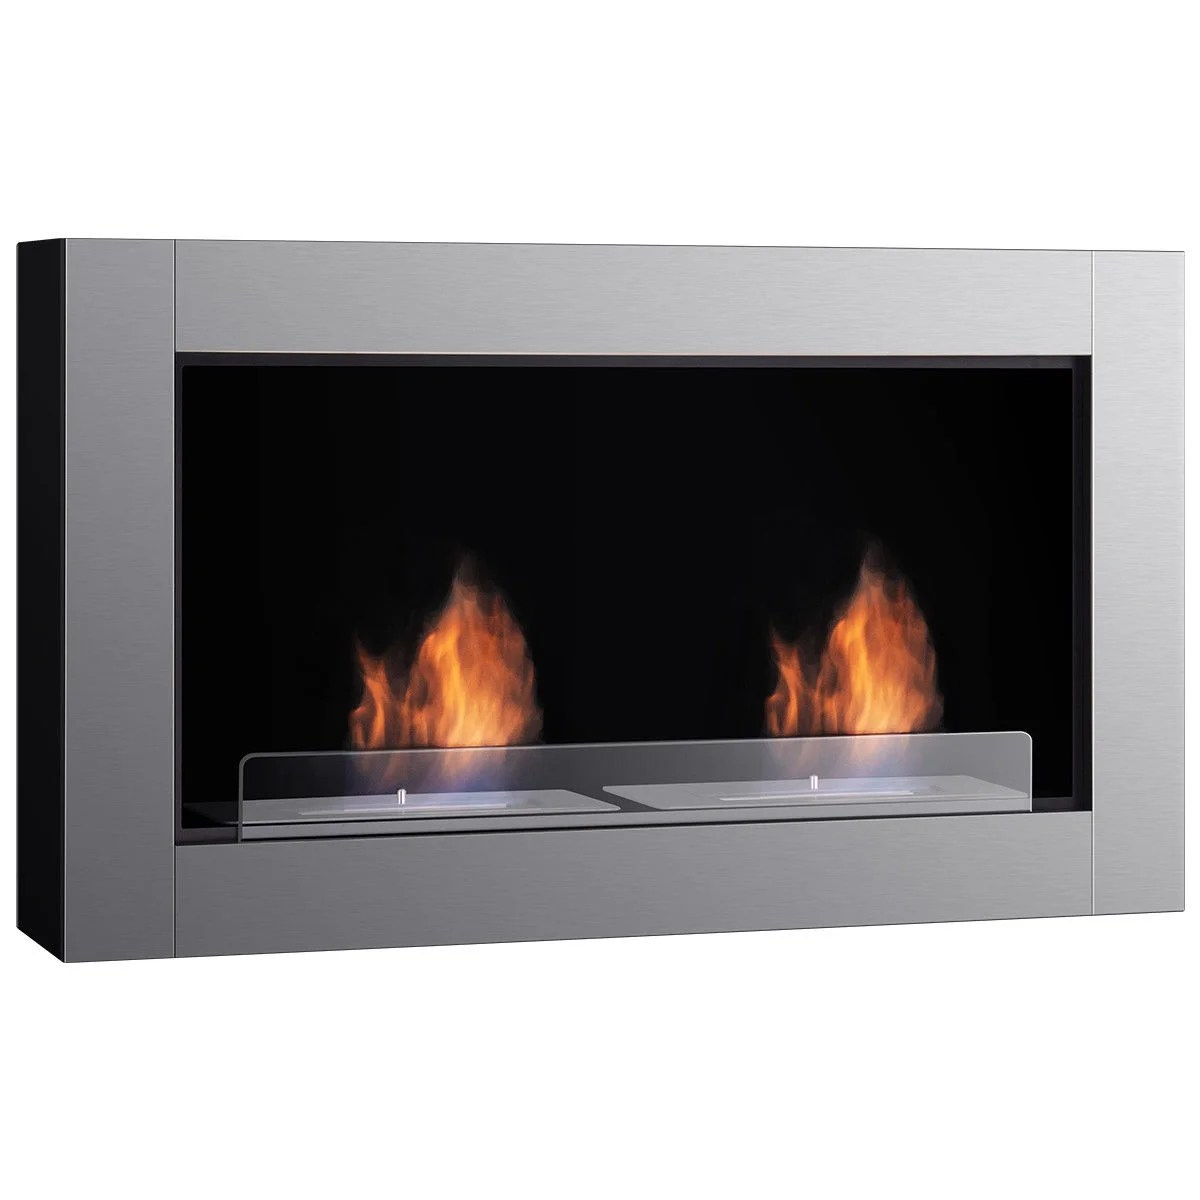 Ethanol Fireplaces Reviews Gymax 38 Inch Wall Mounted Bio Ethanol Fireplace Ventless Dual Burner Fireplace